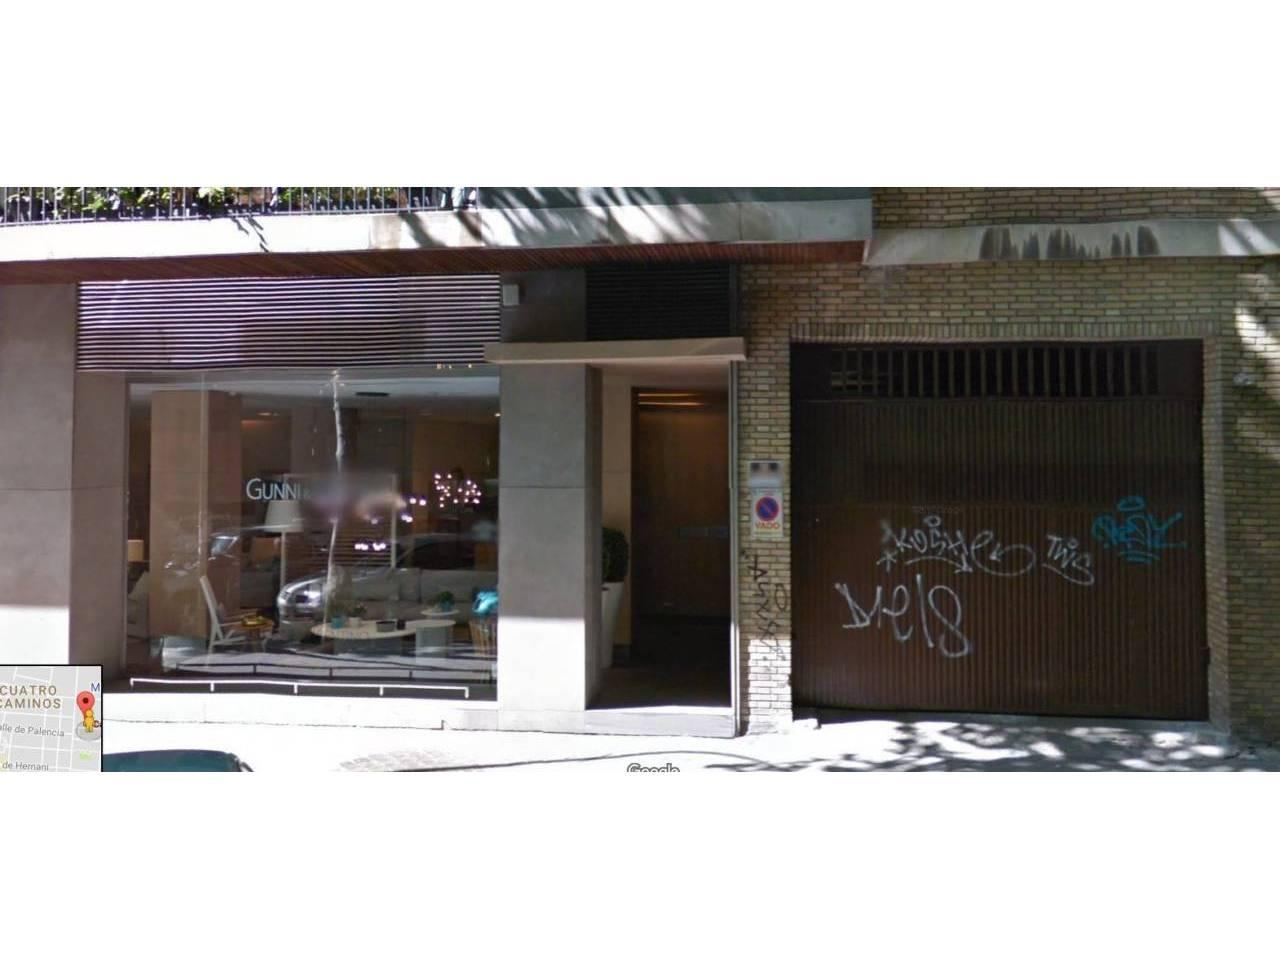 Local Comercial en Venta Tetuan, Madrid